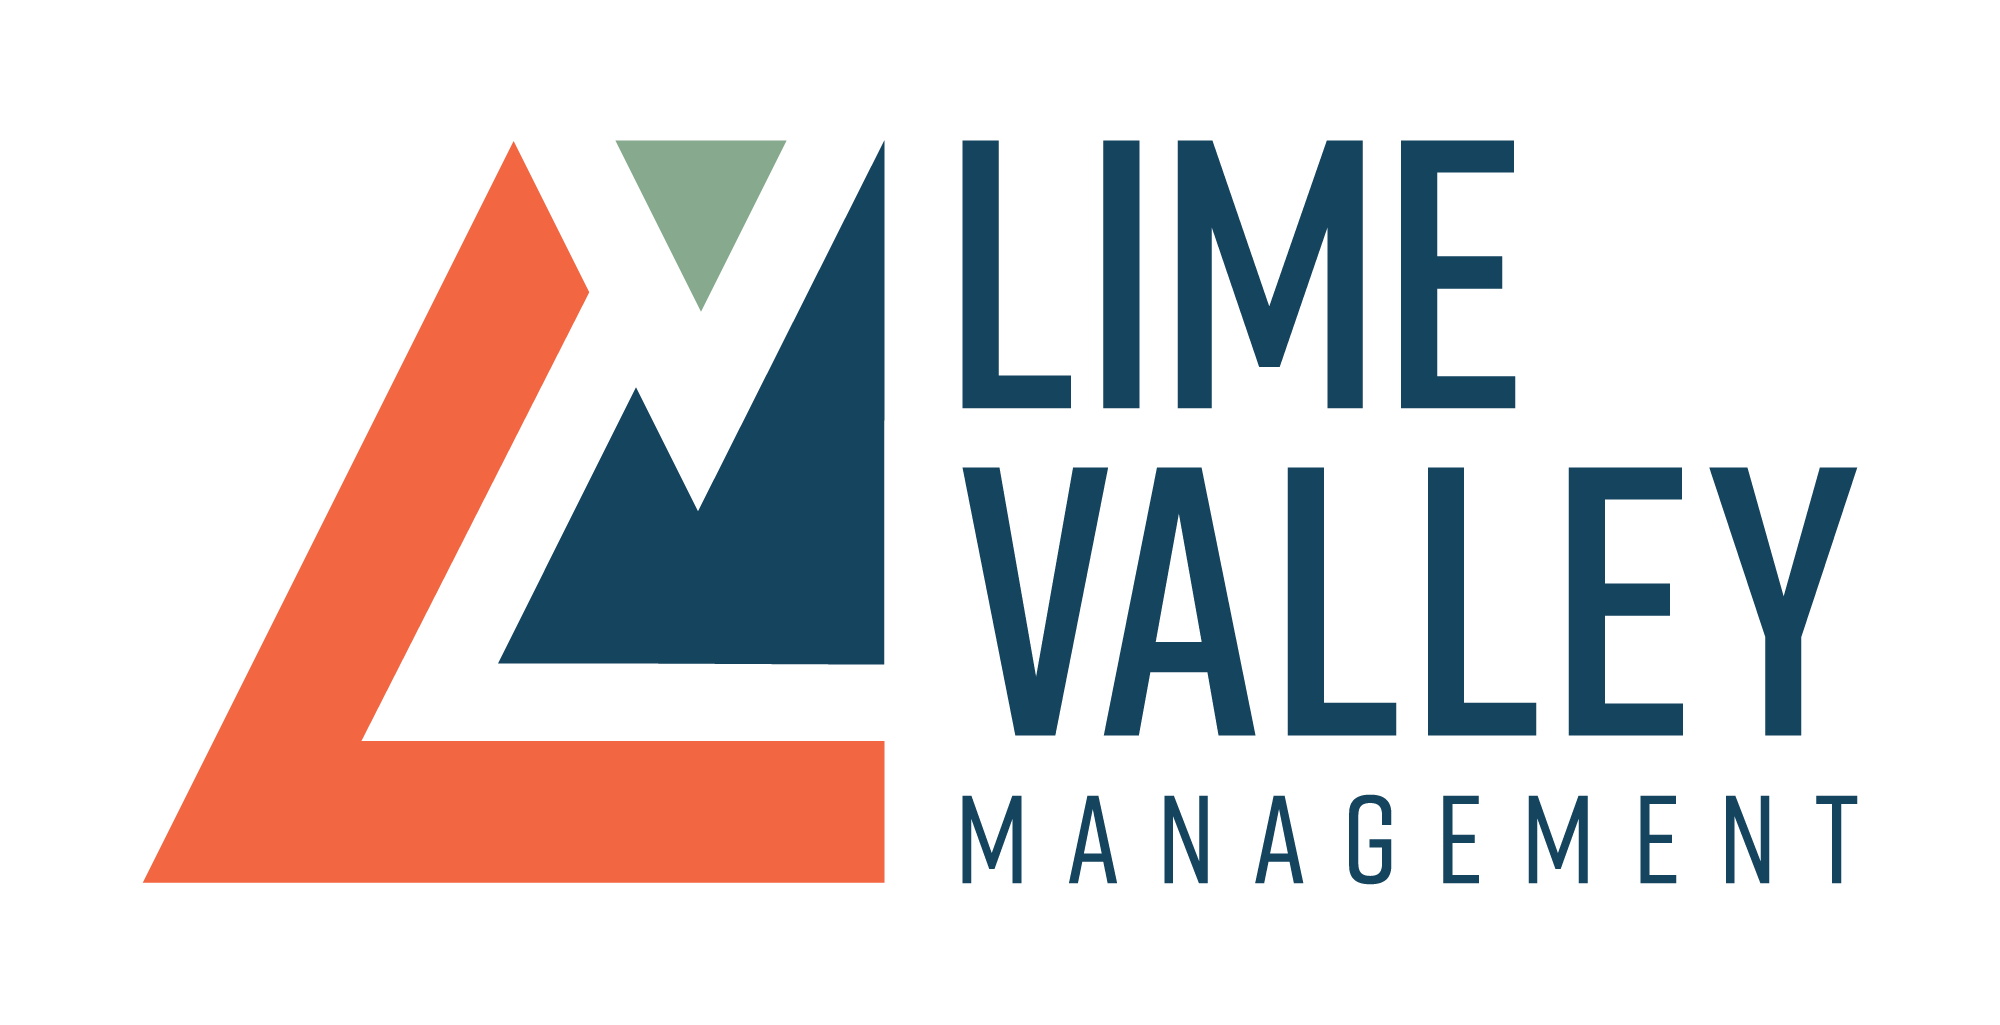 Lime Valley Management Logo